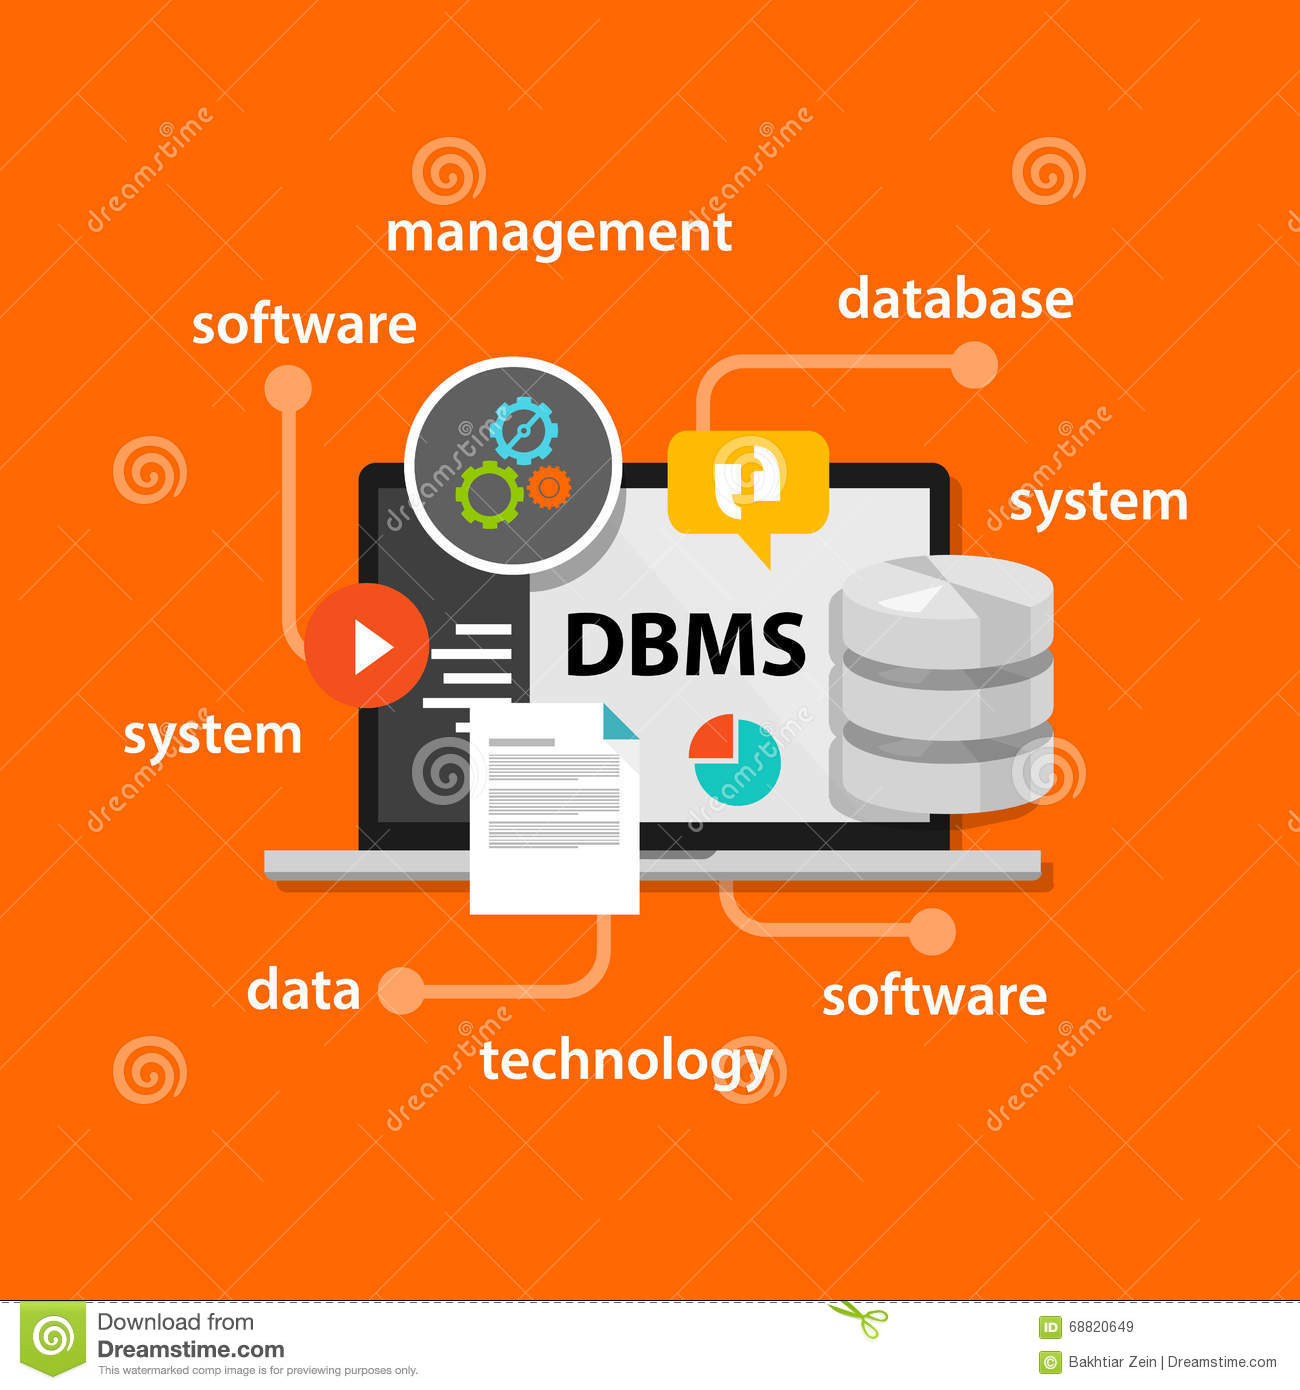 Category:Database management systems